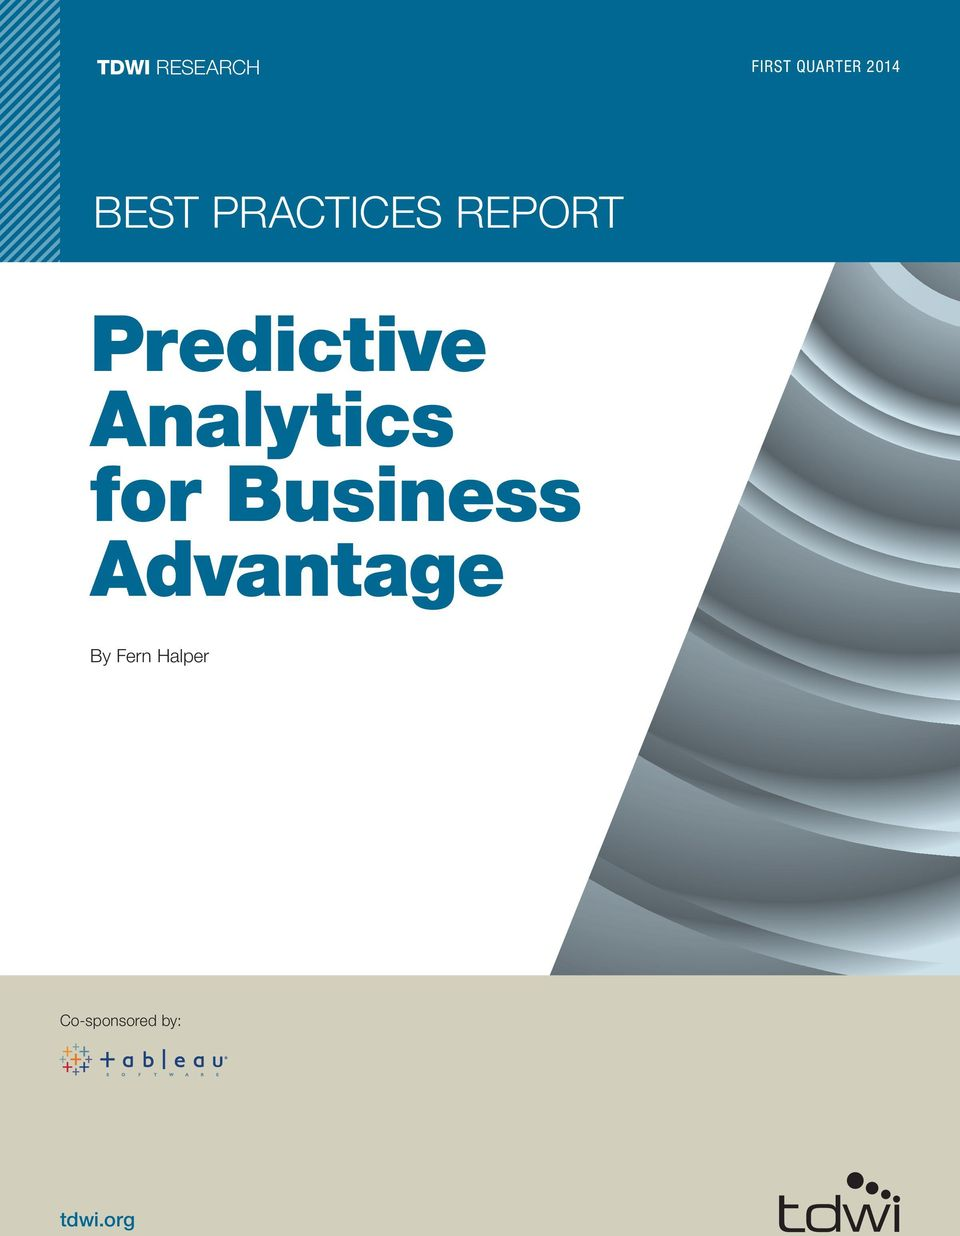 Analytics for Business Advantage